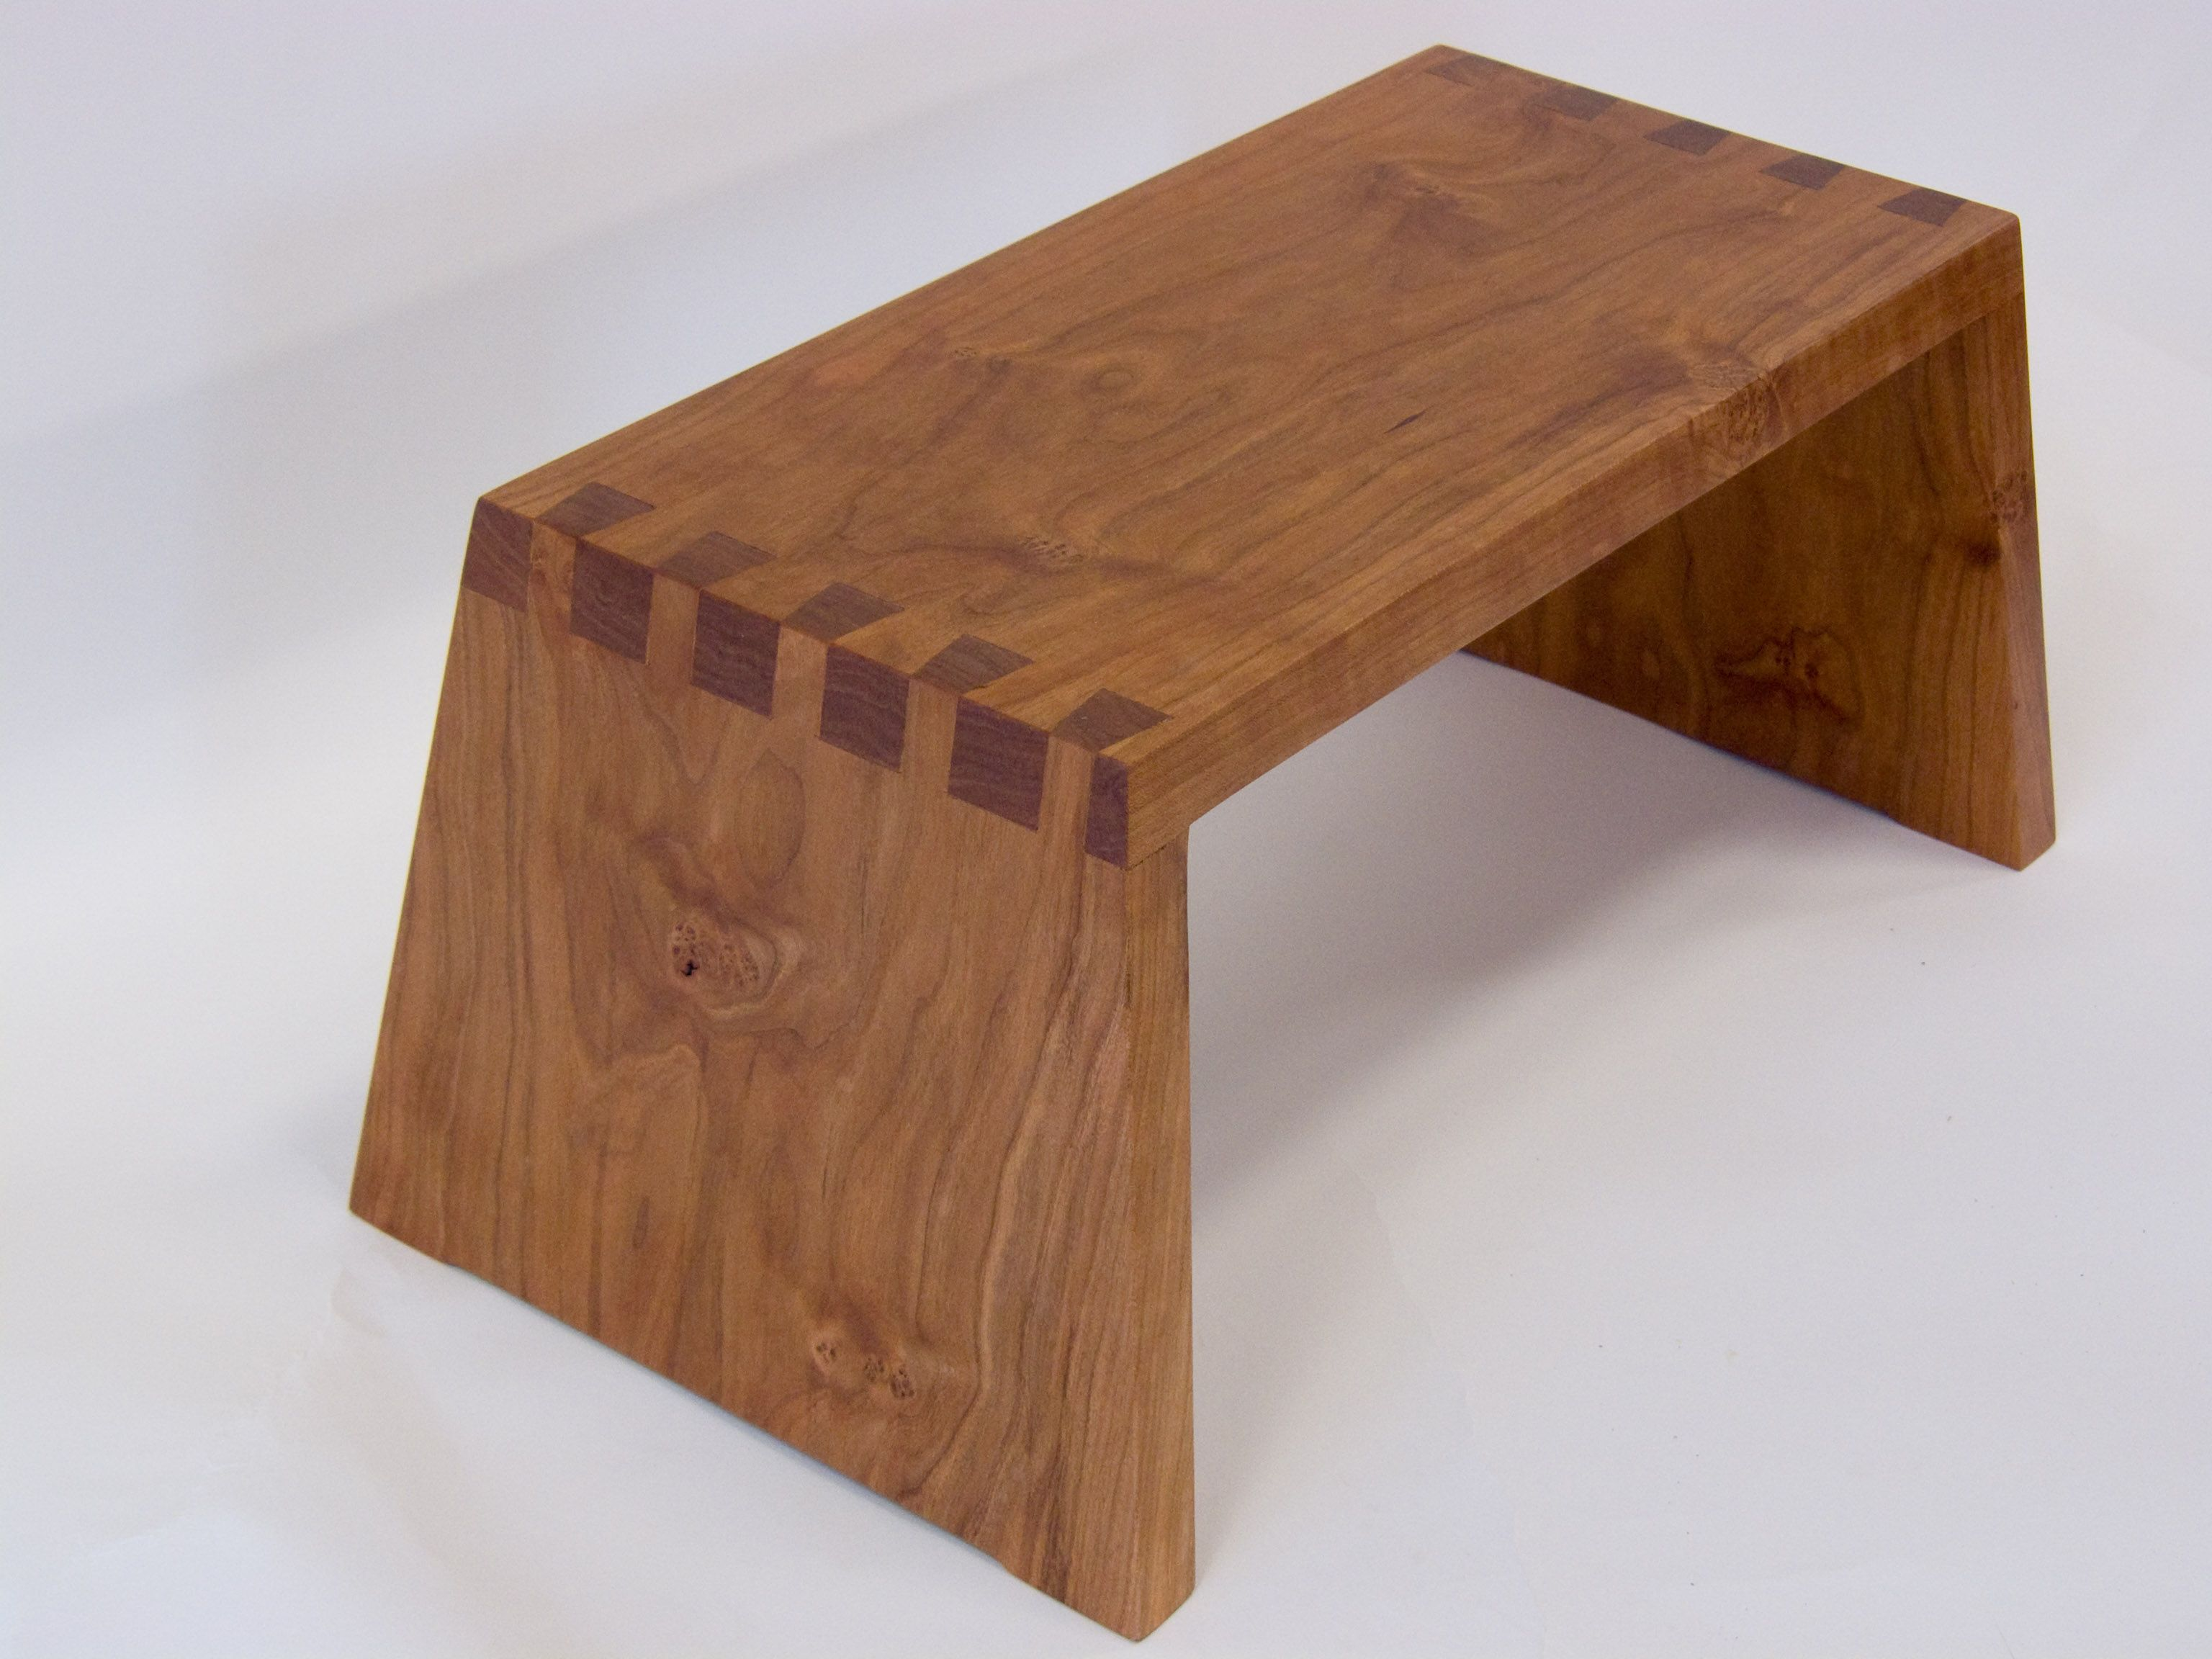 Tremendous Make A Beautiful Dovetail Wooden Step Stool Wooden Steps Ibusinesslaw Wood Chair Design Ideas Ibusinesslaworg